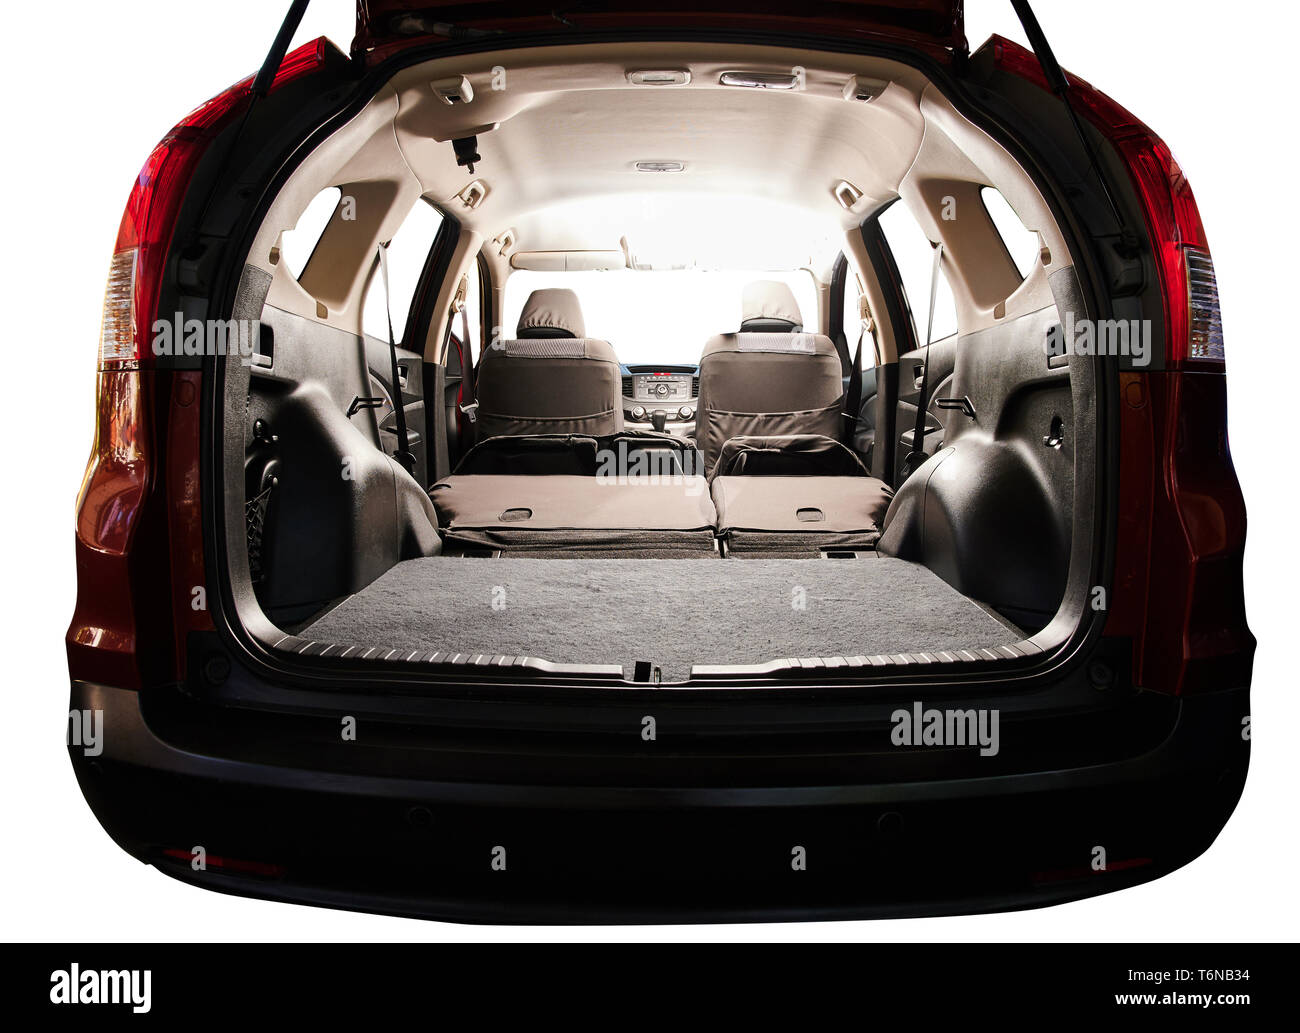 Interior of modern SUV car with open trunk and closed seats - Stock Image